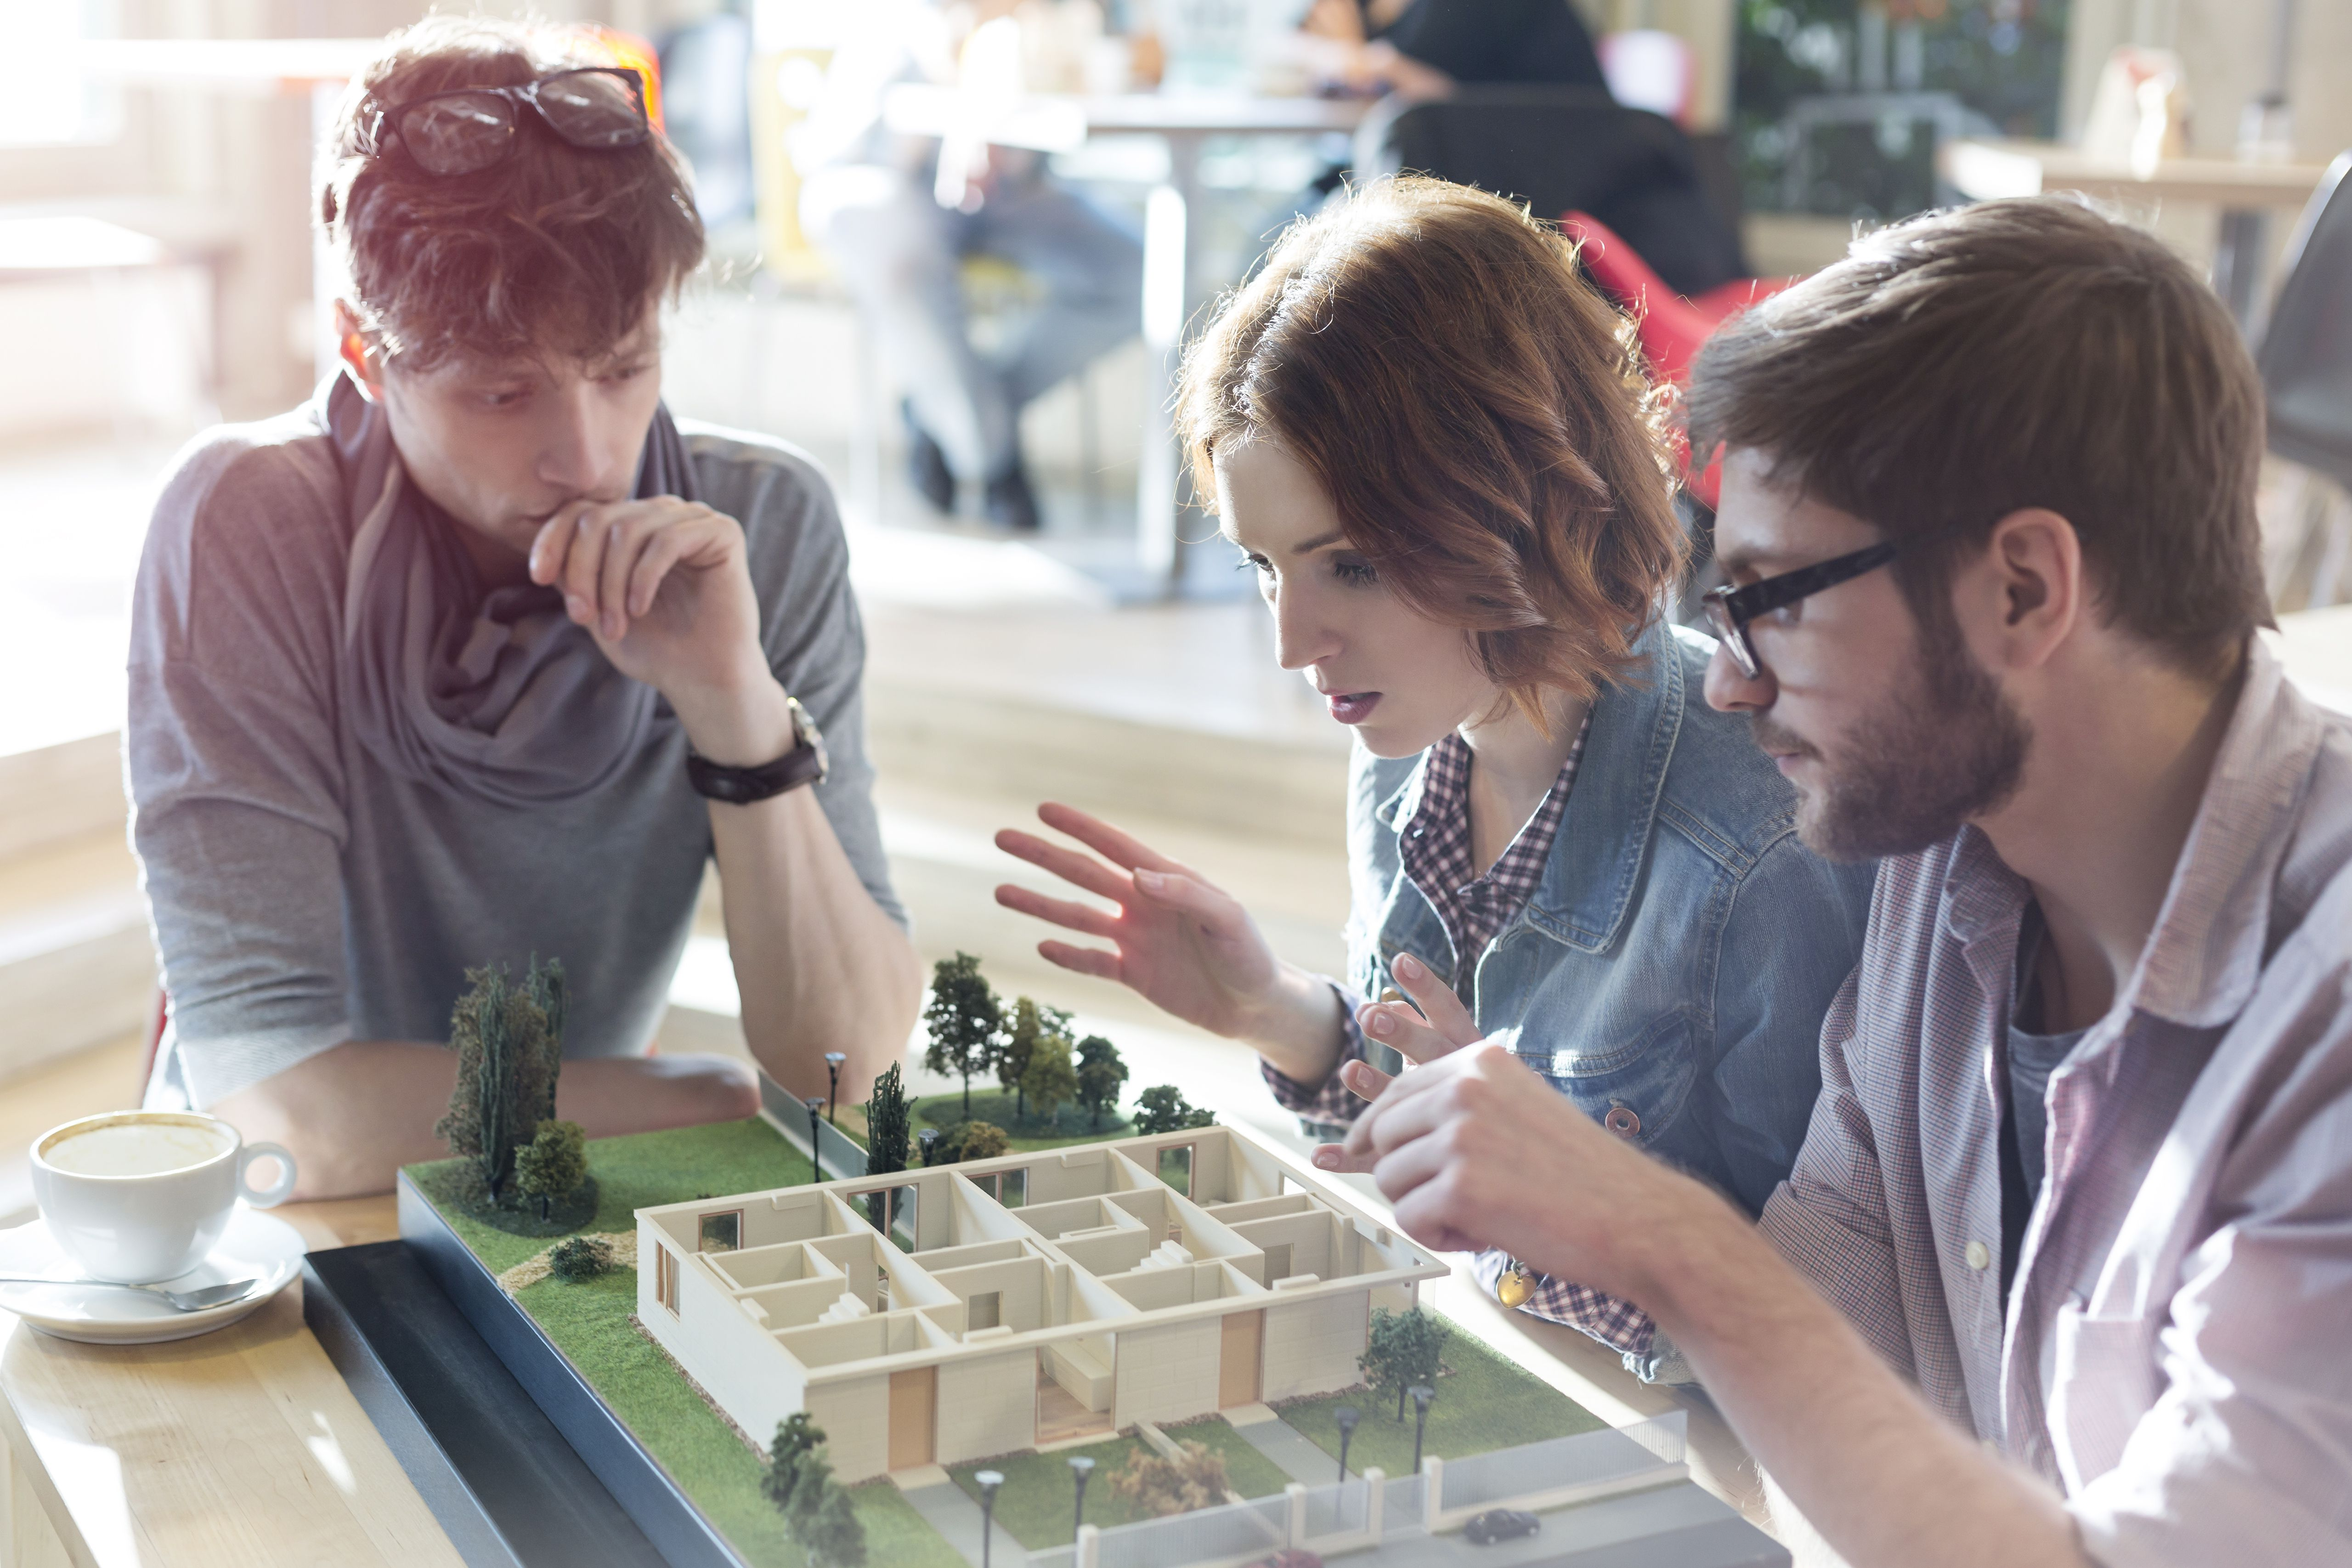 Architecture students brainstorming at building model in classroom